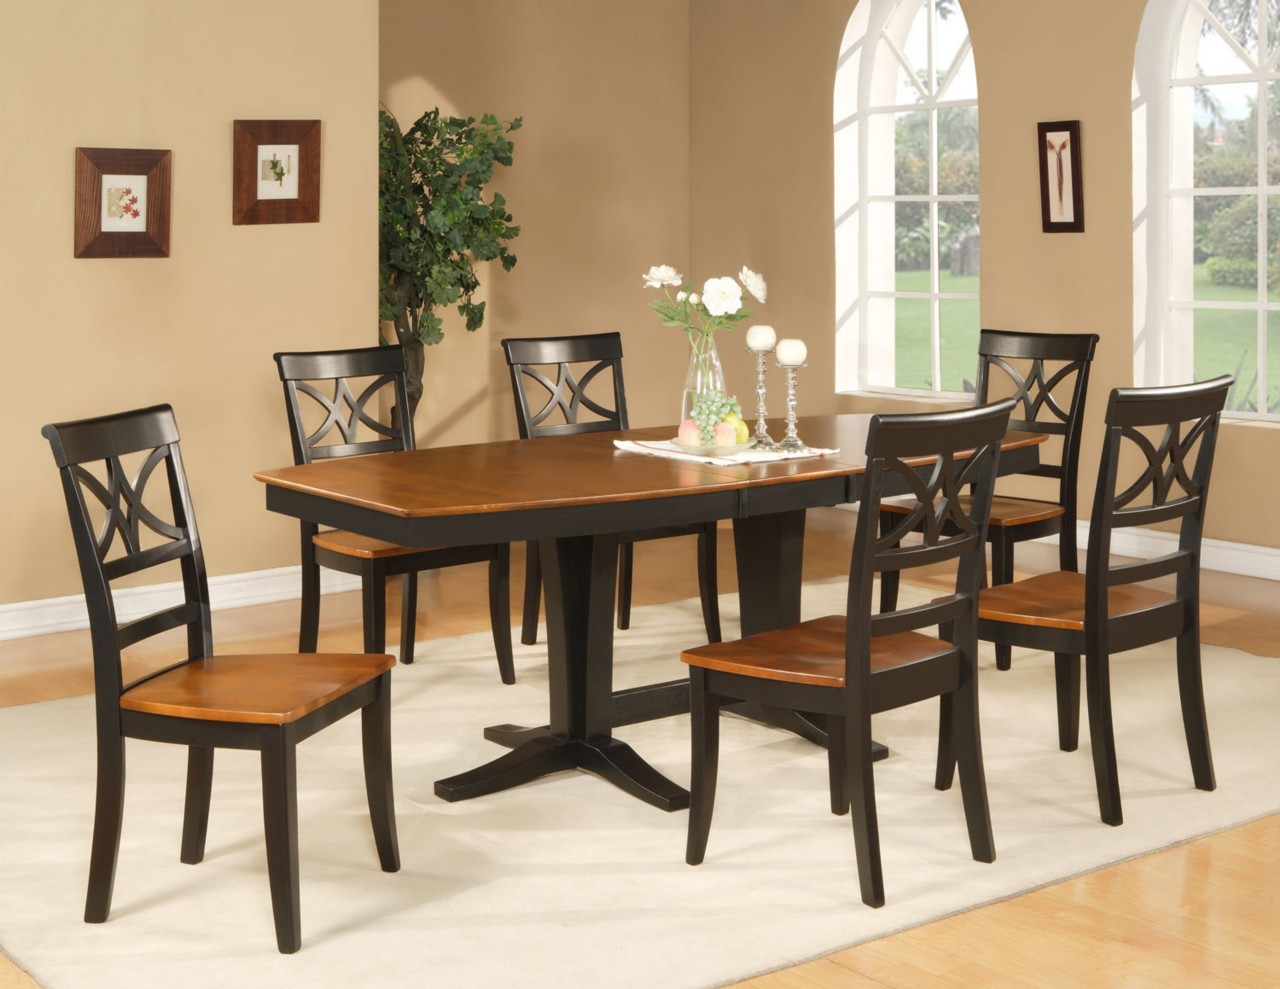 9pc dinette dining room set octagonal table w 8 wooden seat chairs cherry brown ebay. Black Bedroom Furniture Sets. Home Design Ideas